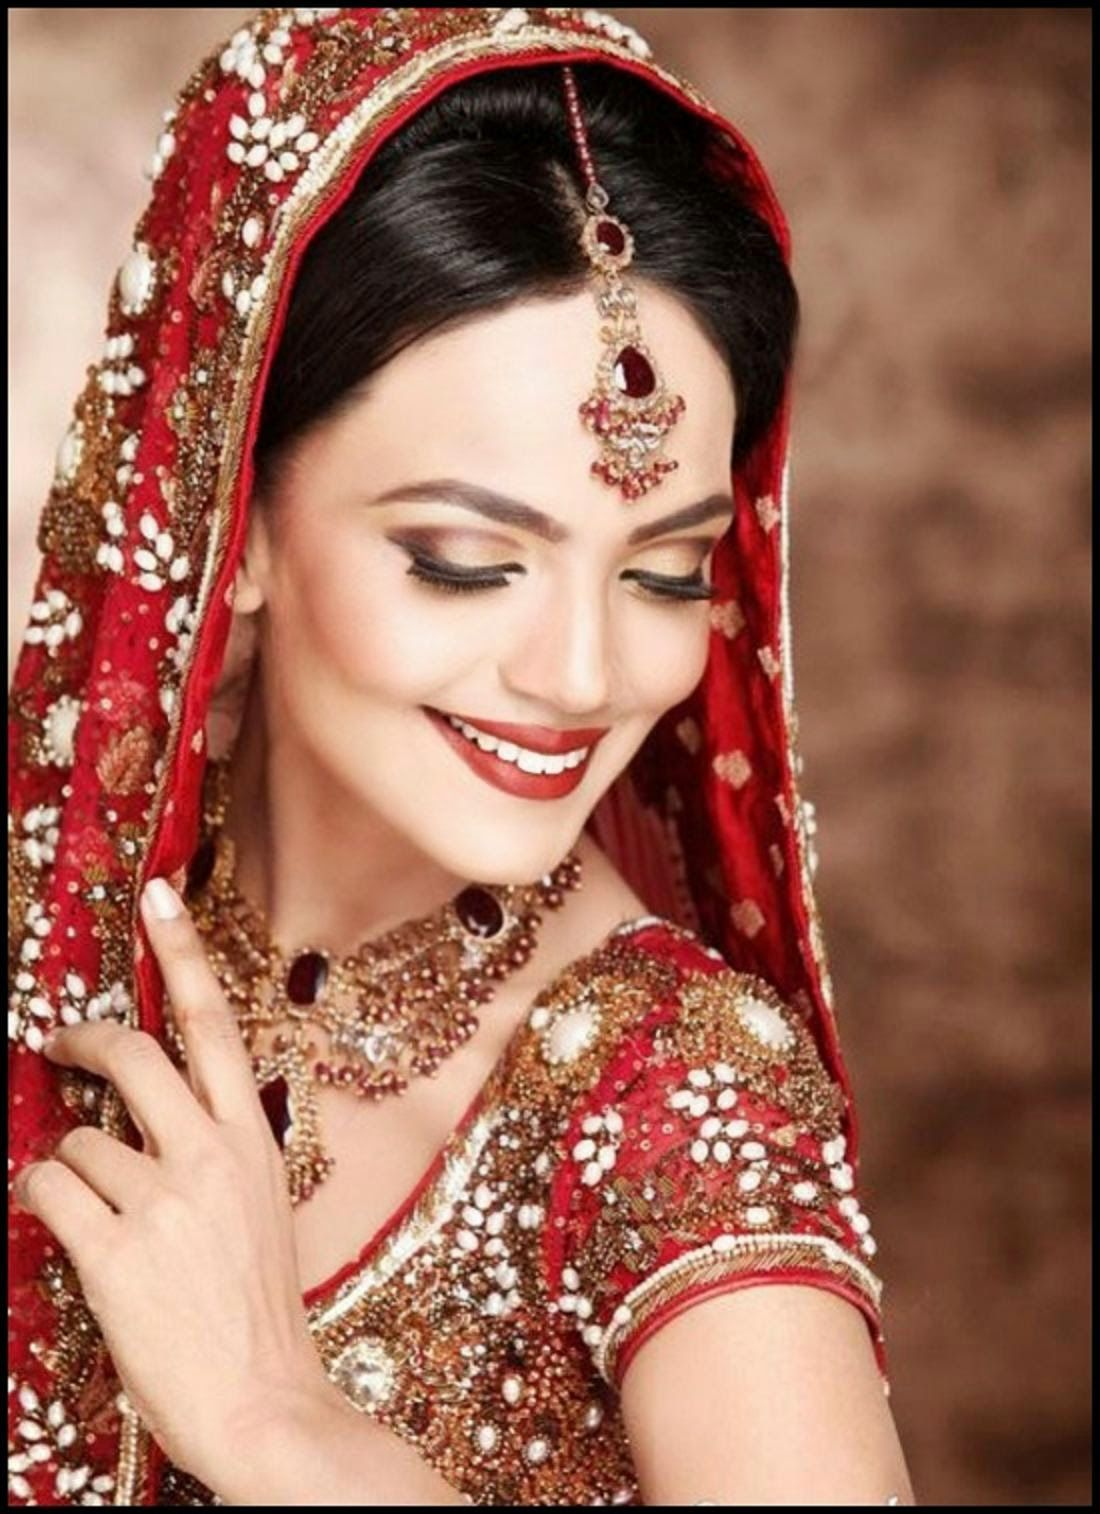 Indian Dulhan New Look Makeup Ideas 2014 For Girls Image